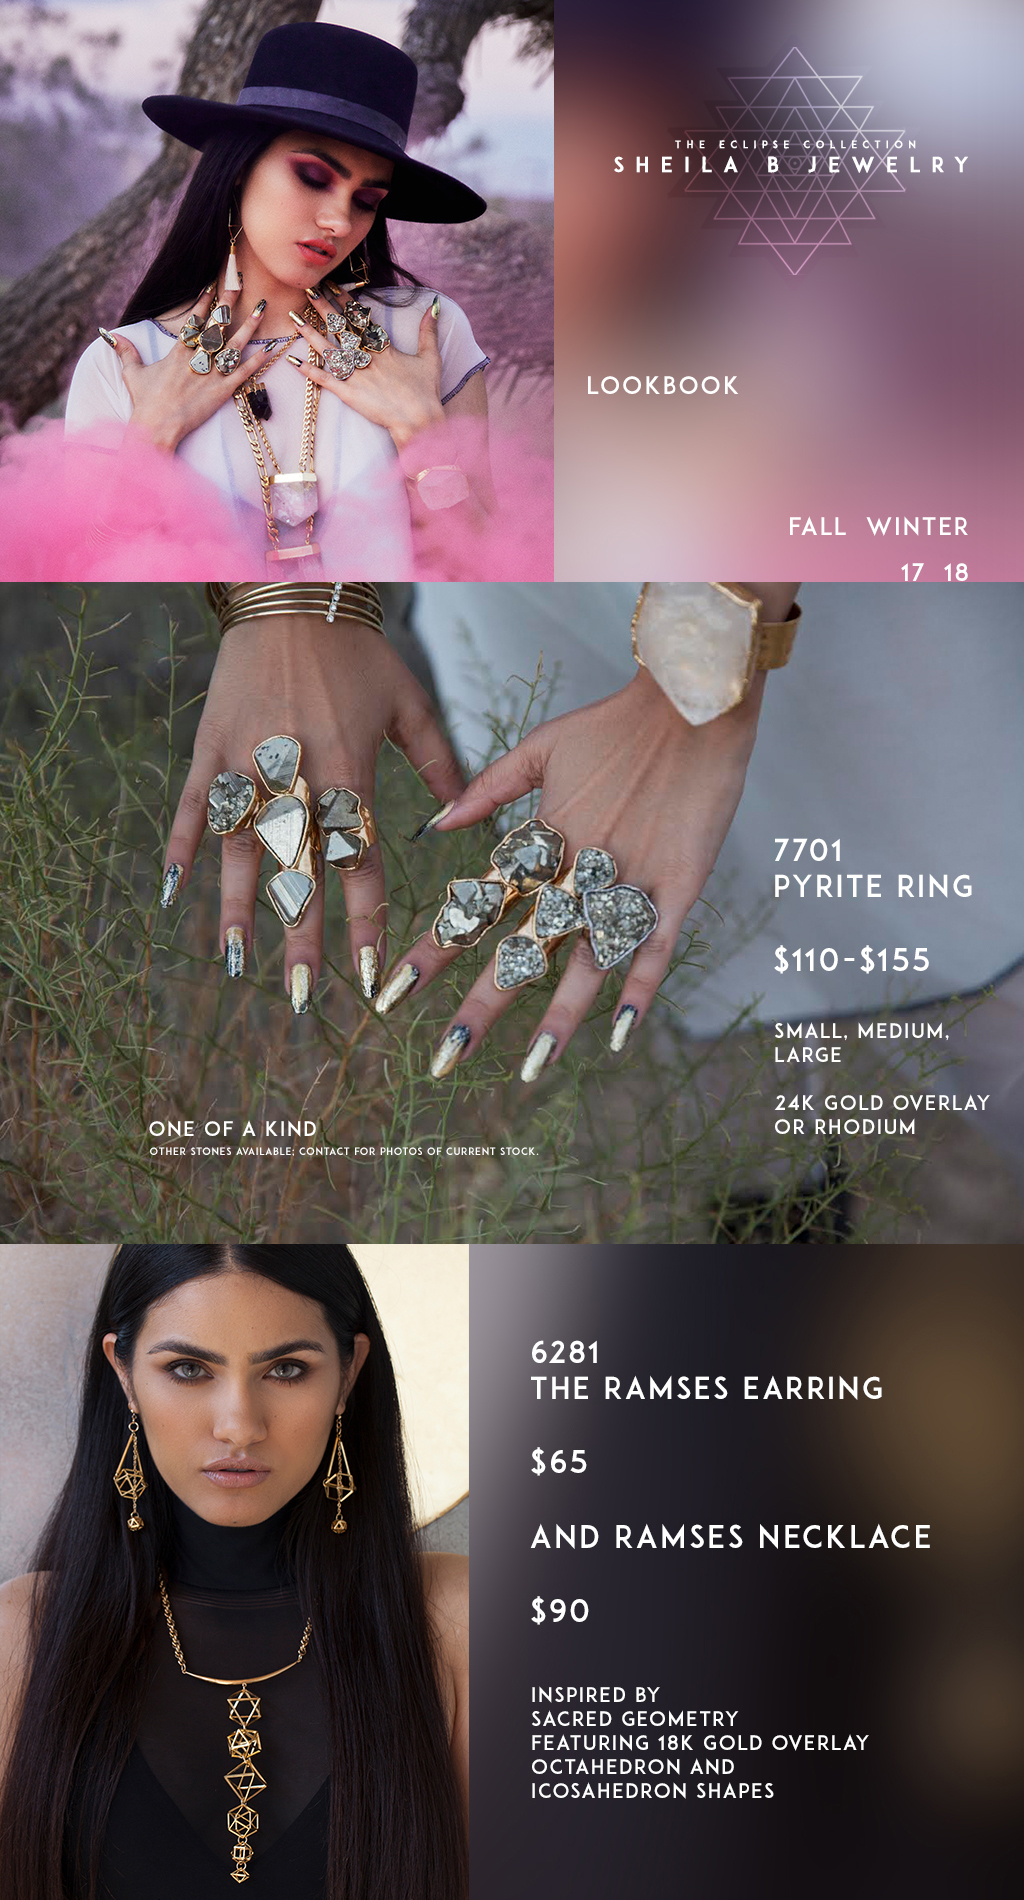 Sheila B Jewelry – Brand and Lookbook